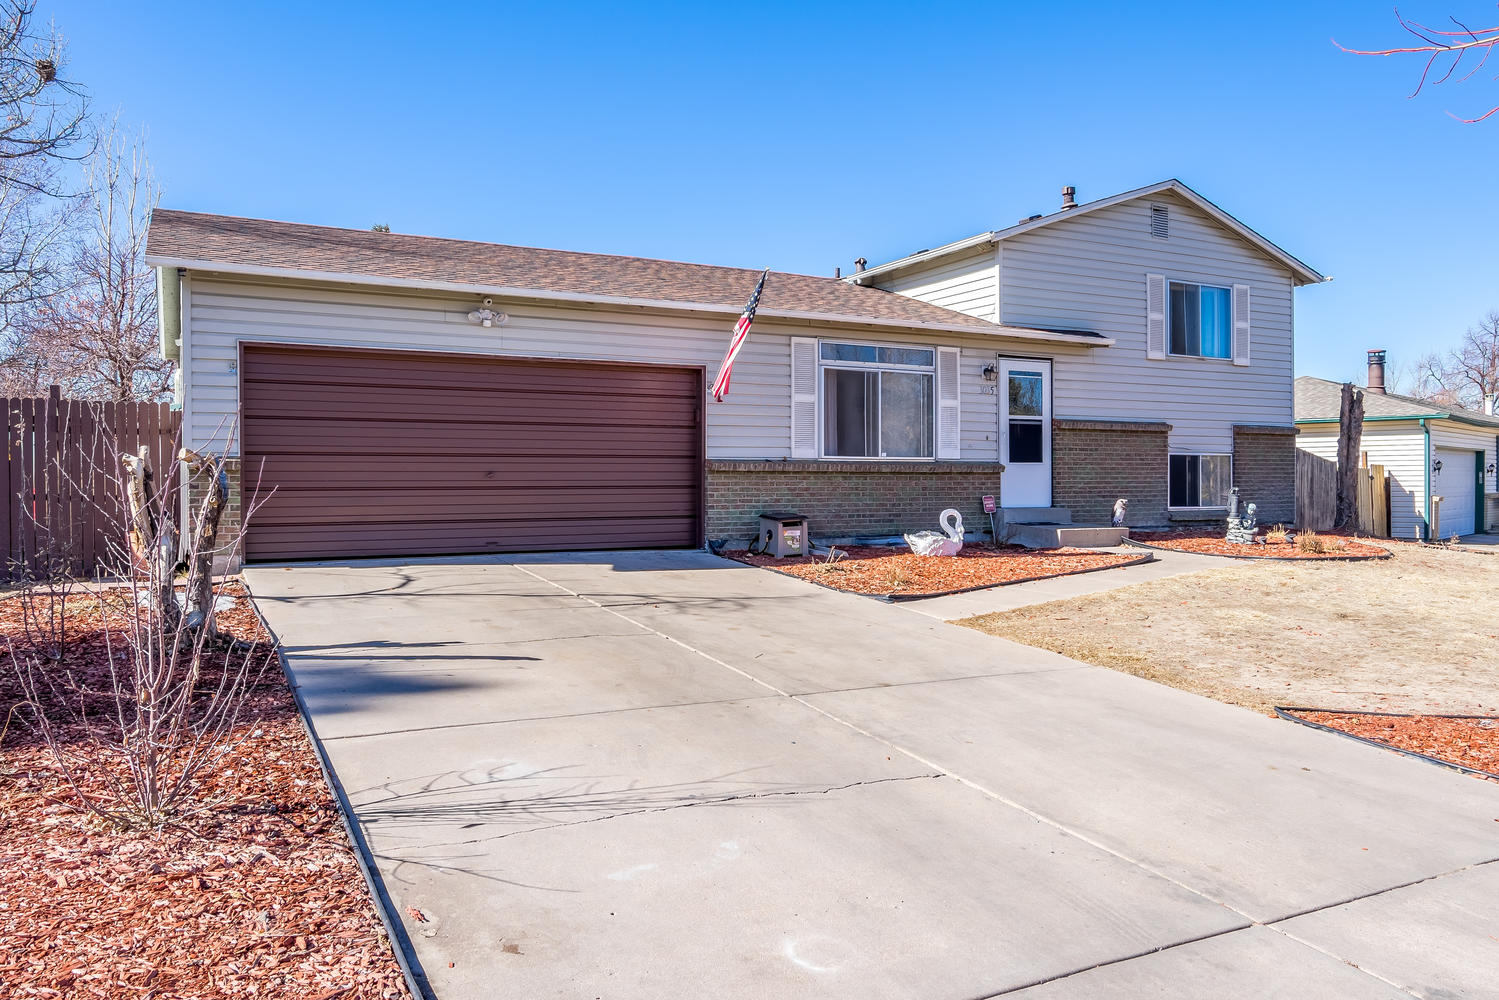 3035 S Ouray St, Aurora, CO 80013